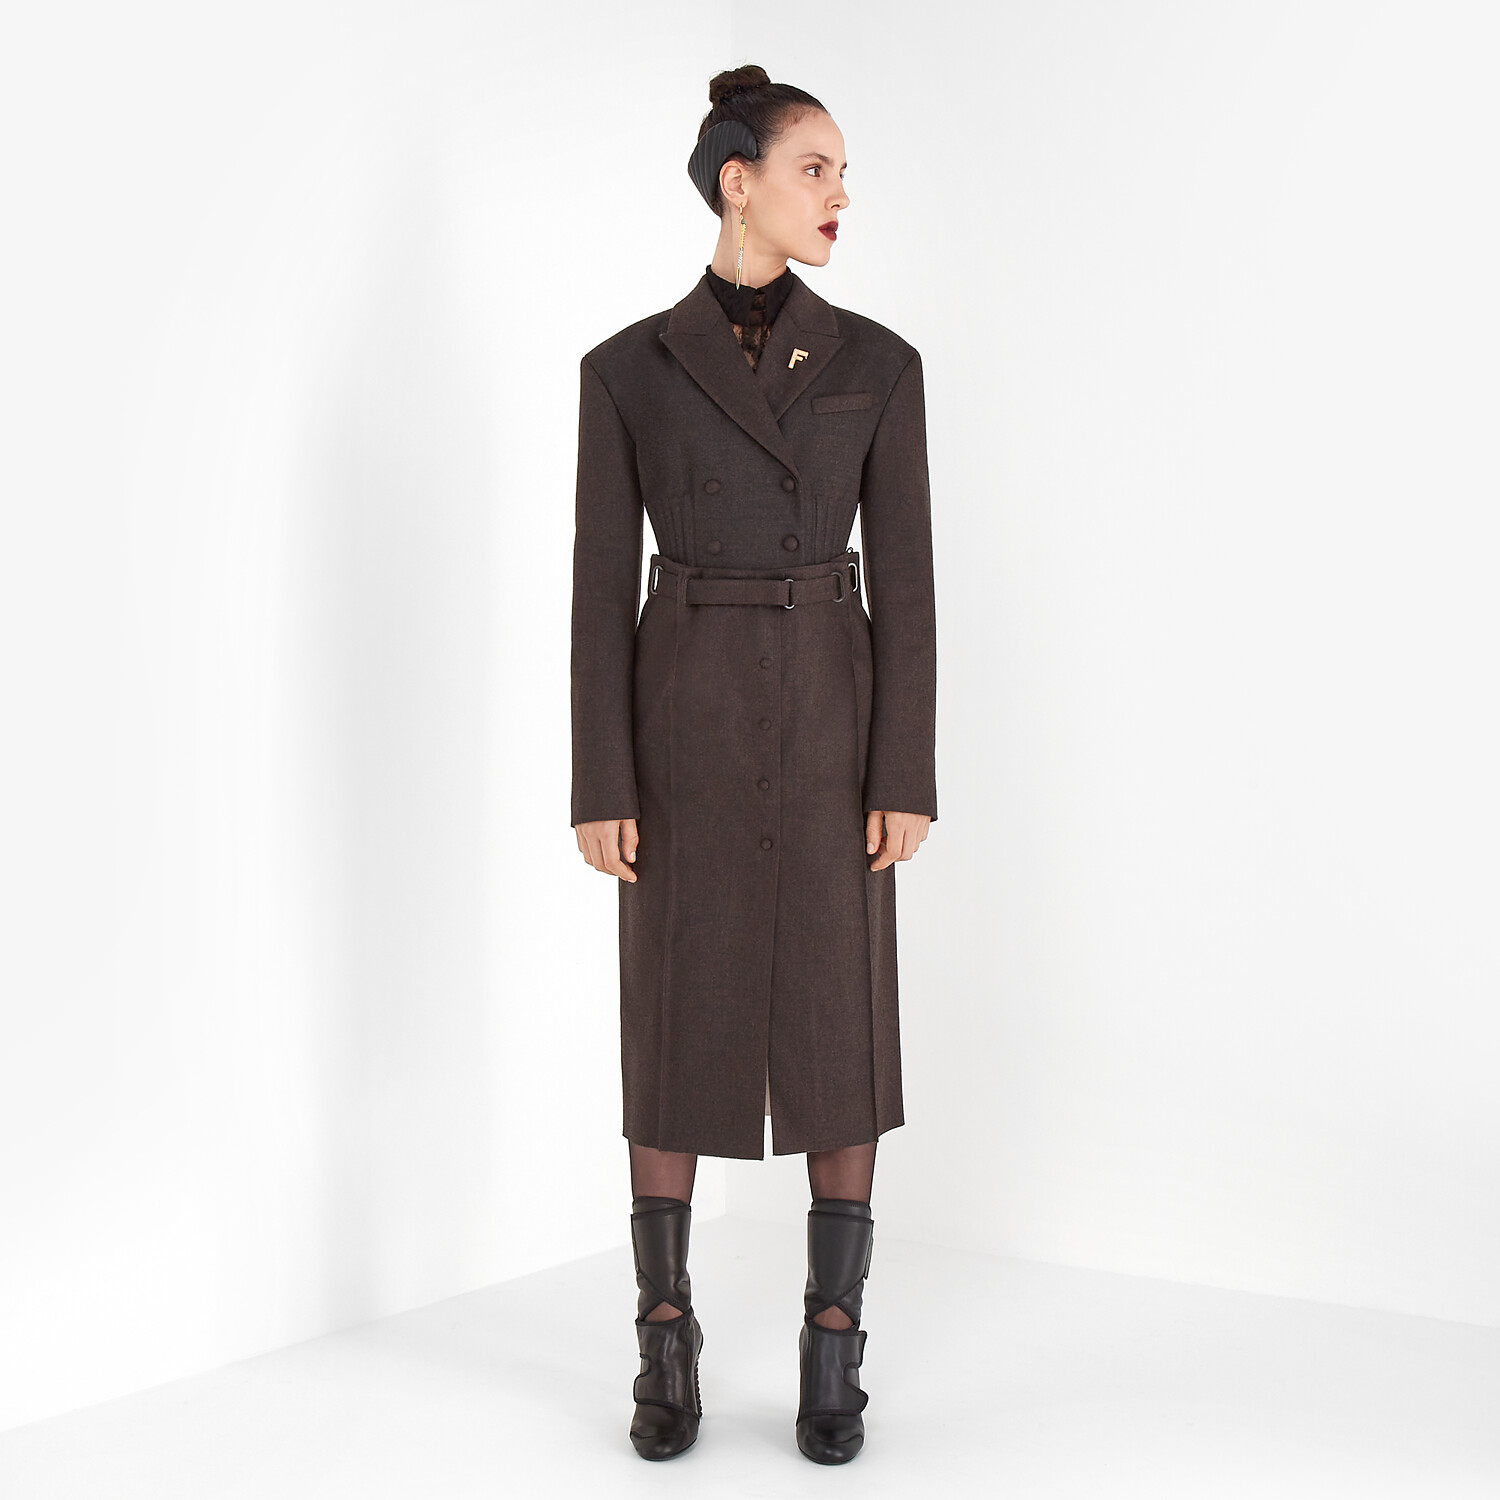 FENDI SKIRT - Brown cashmere and flannel skirt - view 4 detail